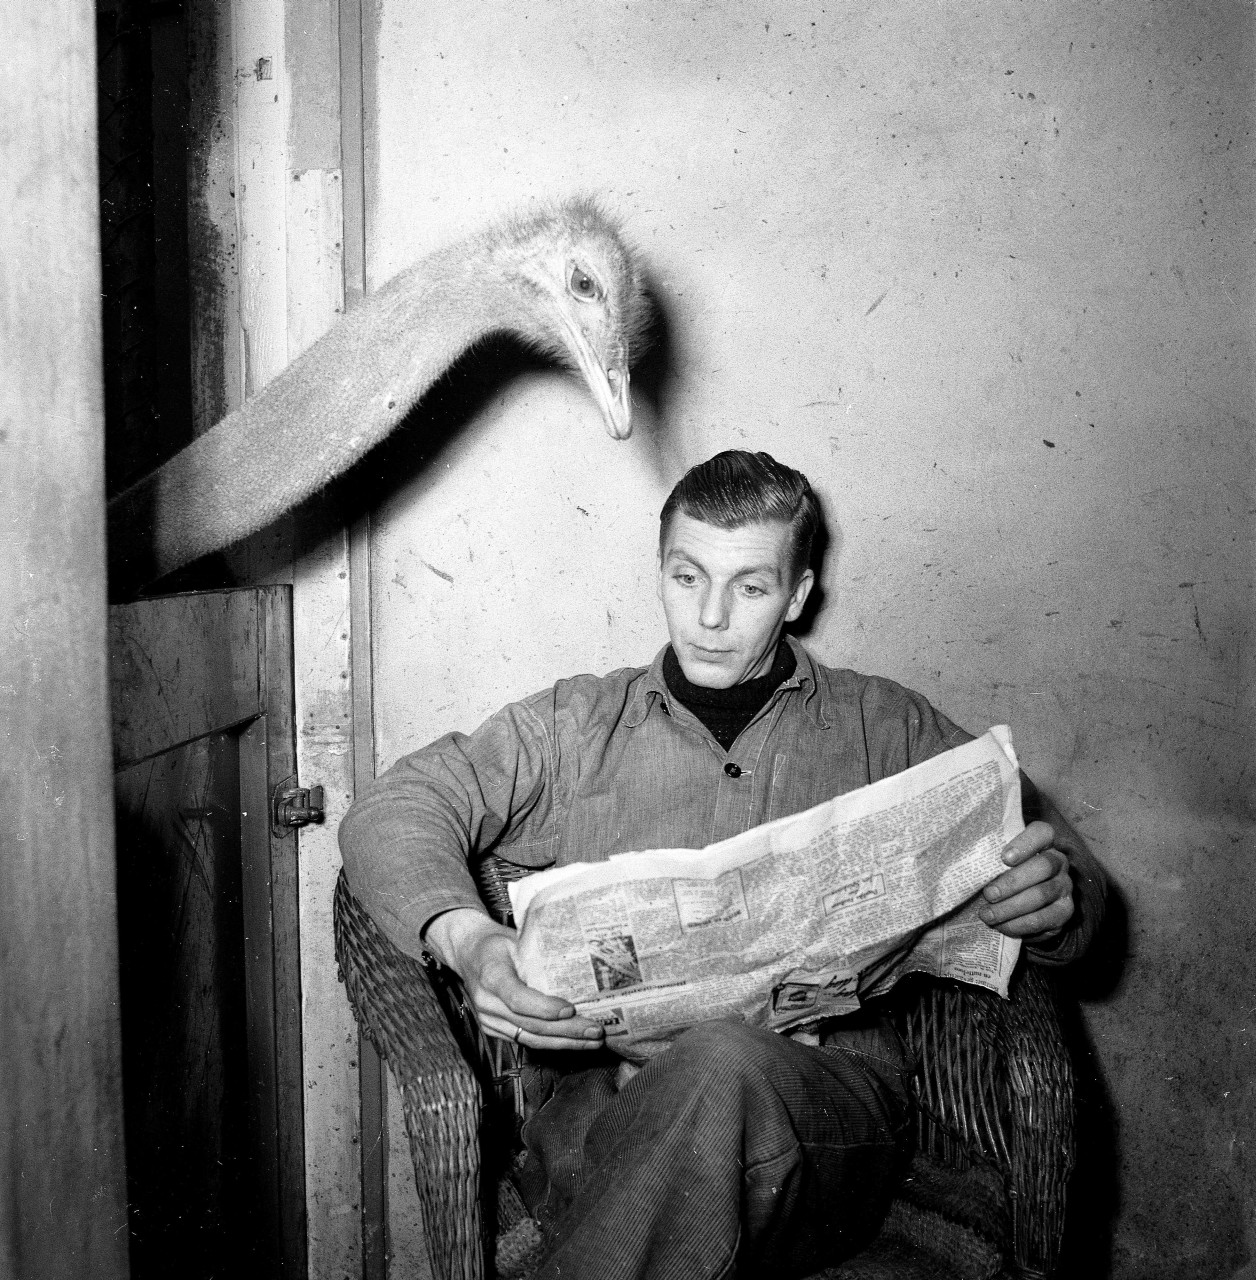 Ostrich reads newspaper of caretaker, Nationaal Archief, Wikimedia Commons